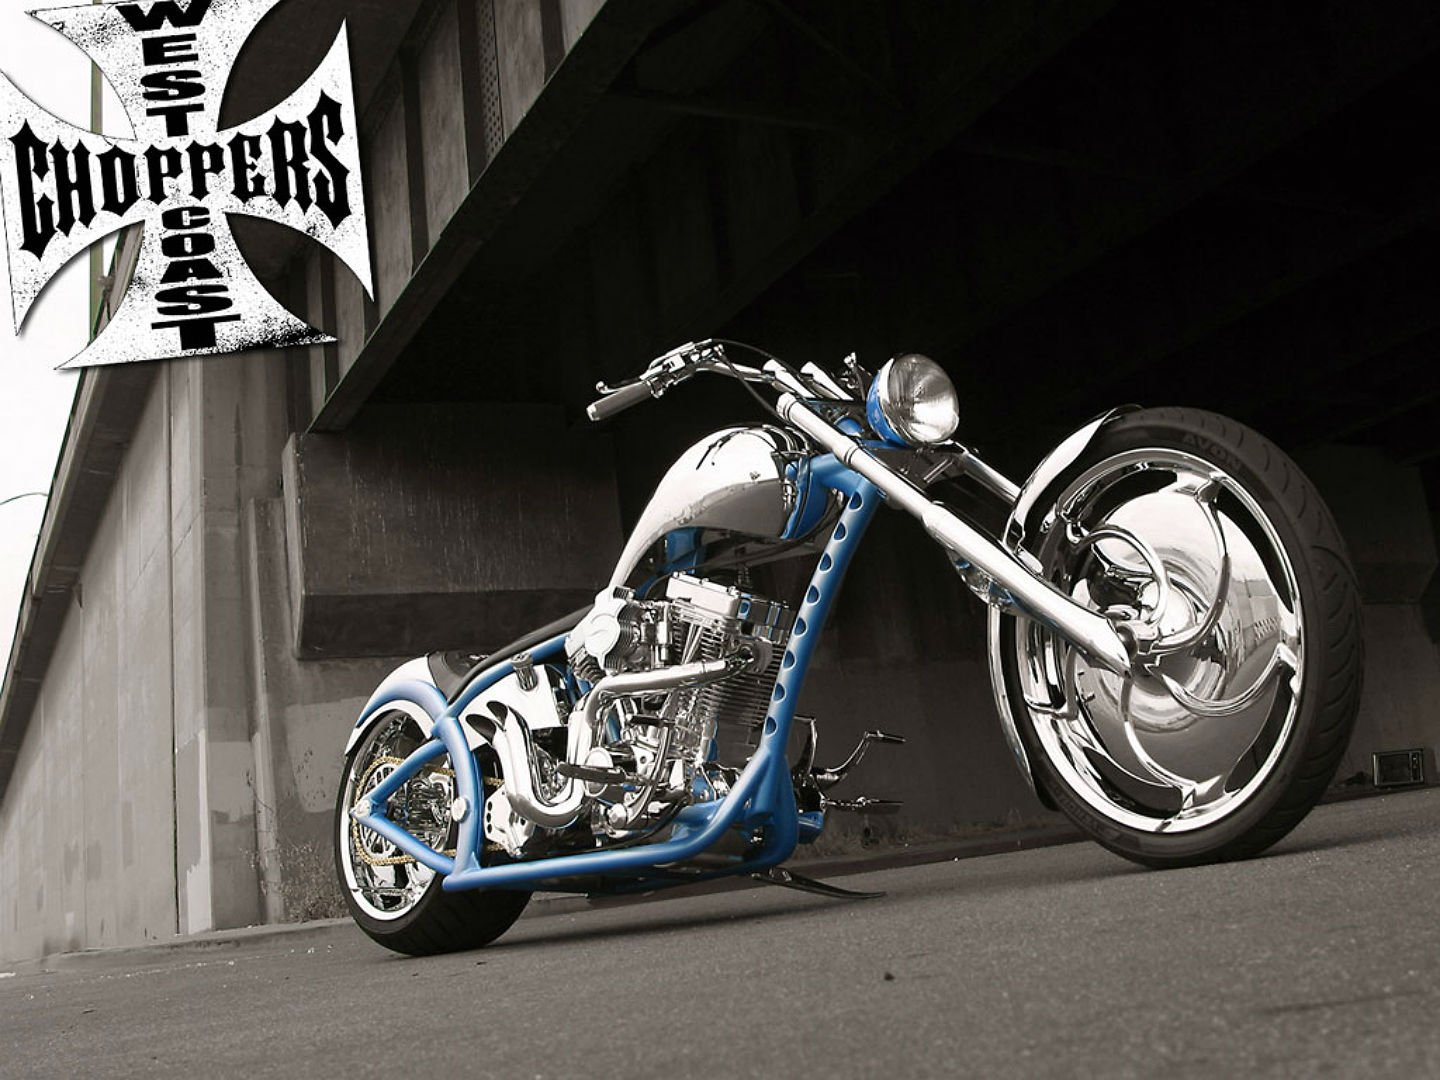 west coast choppers custom bike motorbike motorcycle. Black Bedroom Furniture Sets. Home Design Ideas